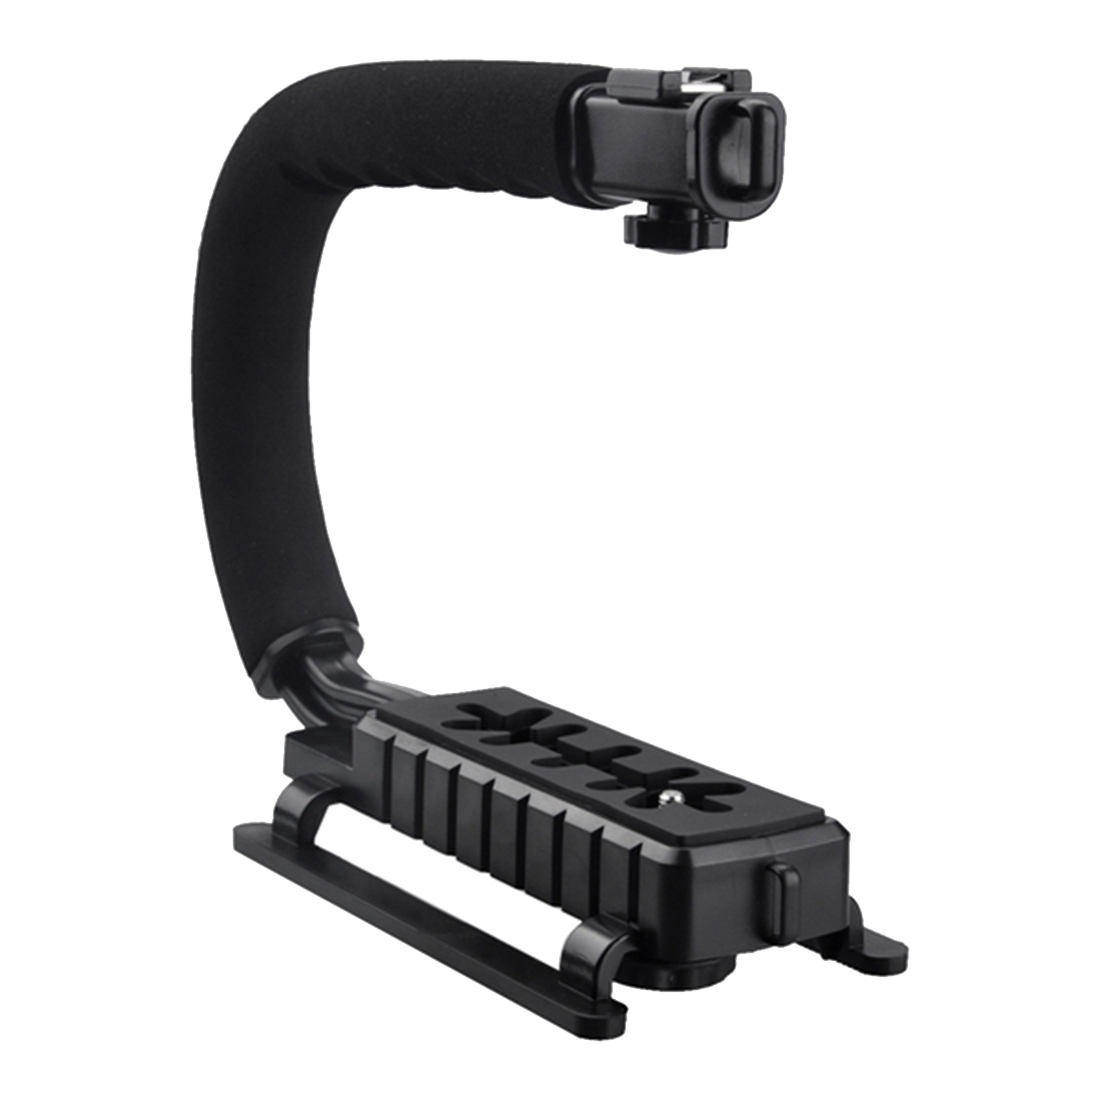 Top Deals Pro Stabilizer C Shape Bracket Video Handheld Grip fit for Camcorder Camera DSLR